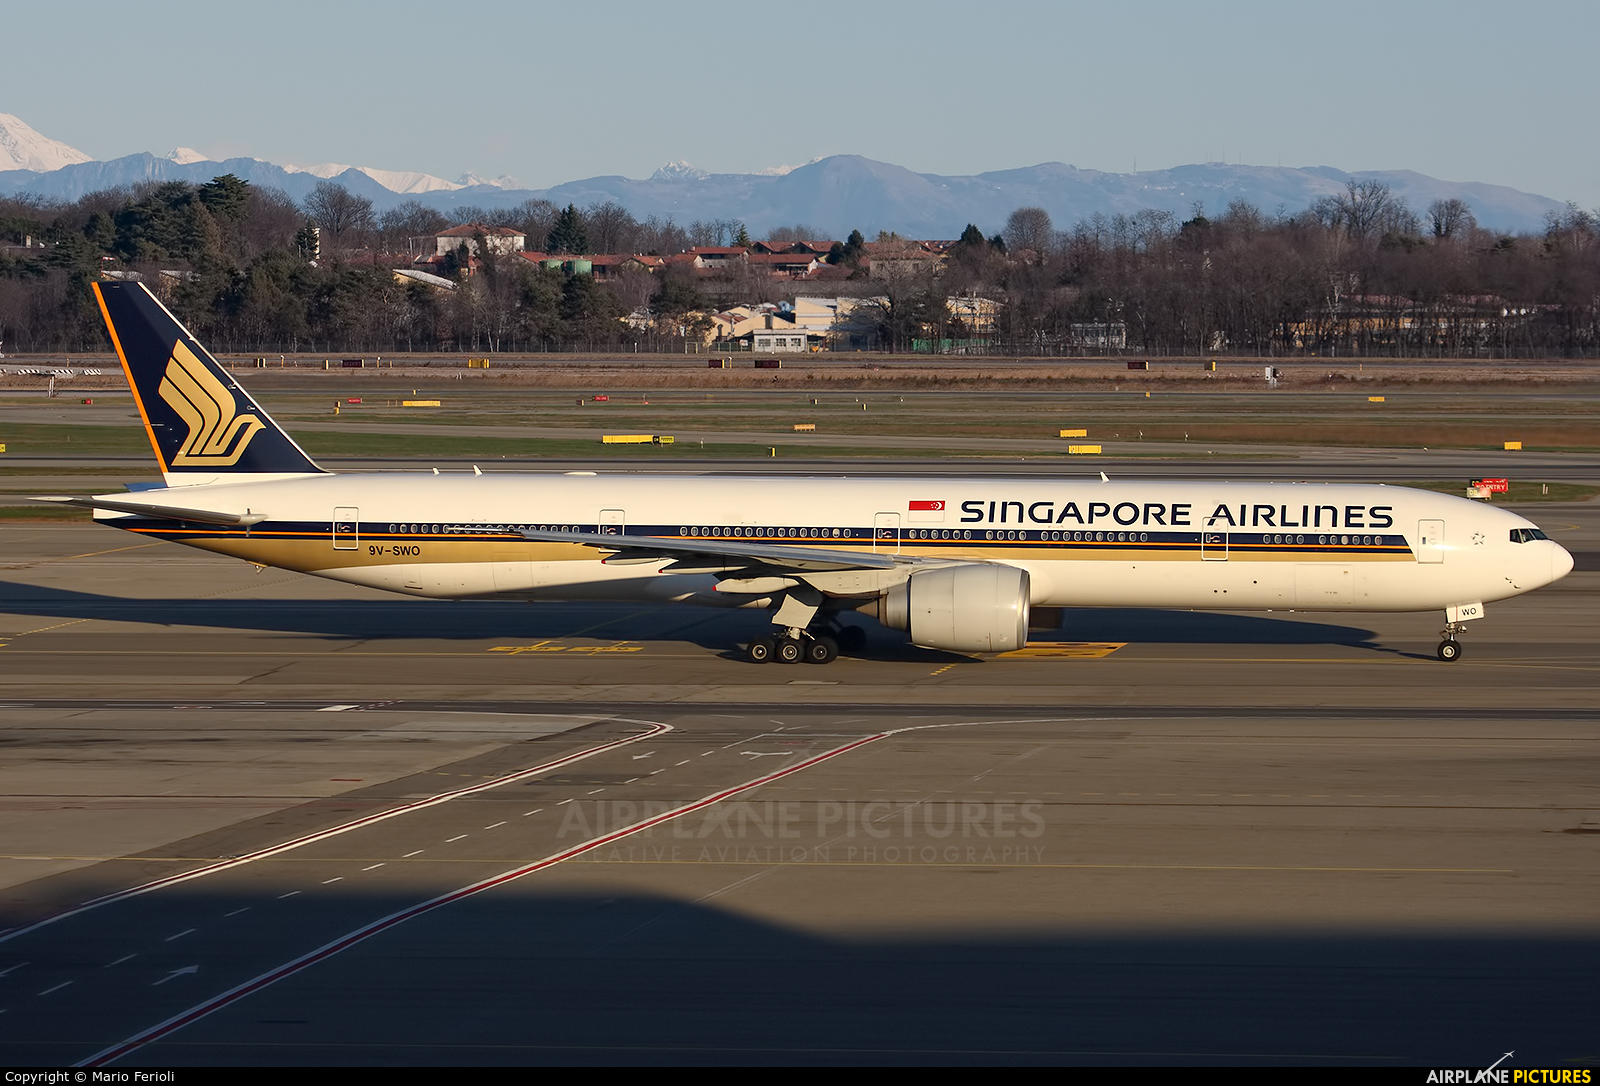 Singapore Airlines 9V-SWO aircraft at Milan - Malpensa